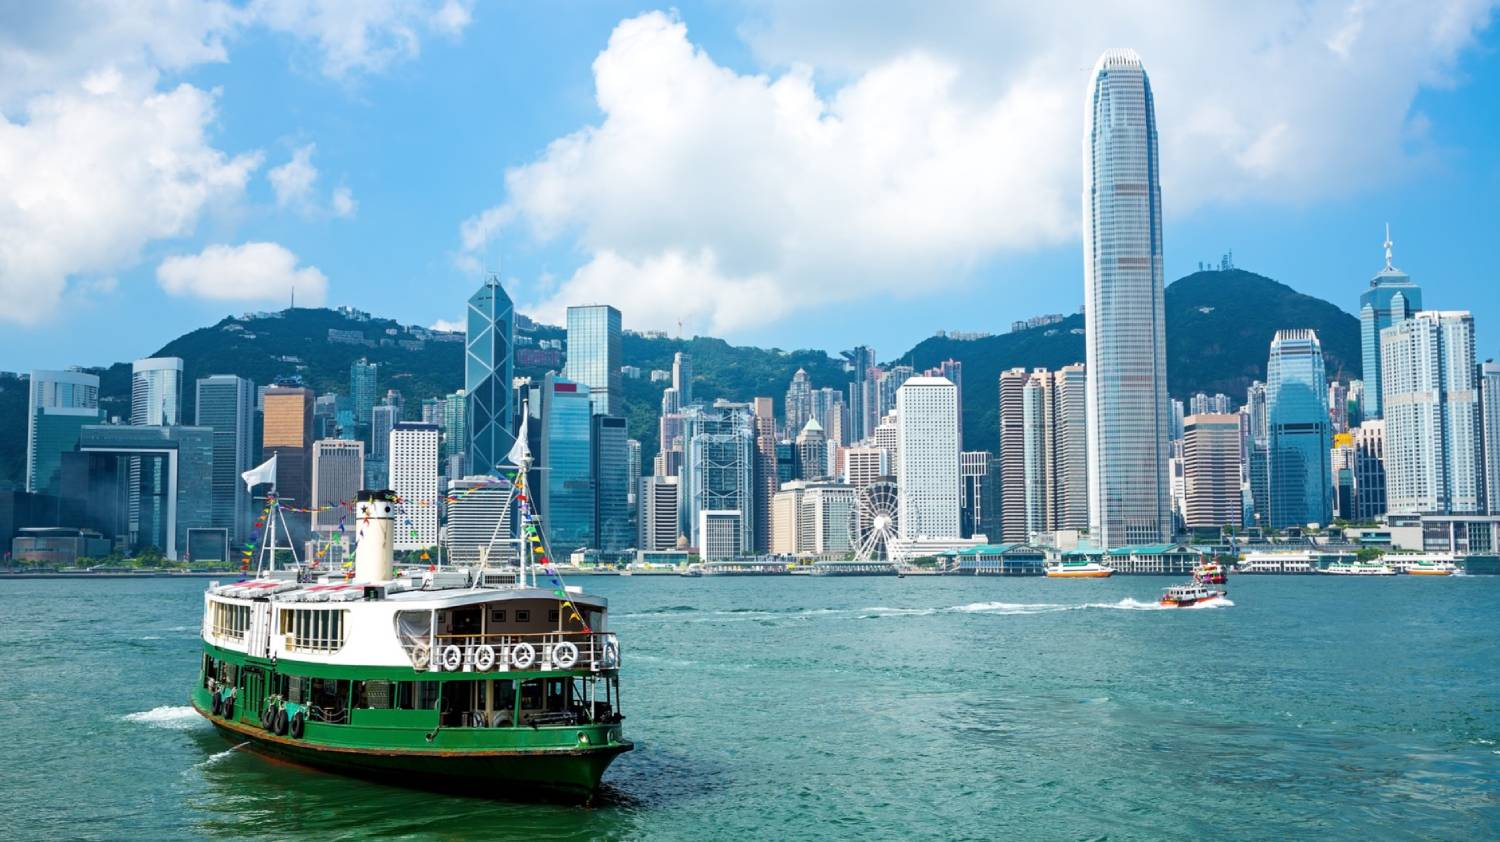 Star Ferry Pier - Things To Do In Hong Kong